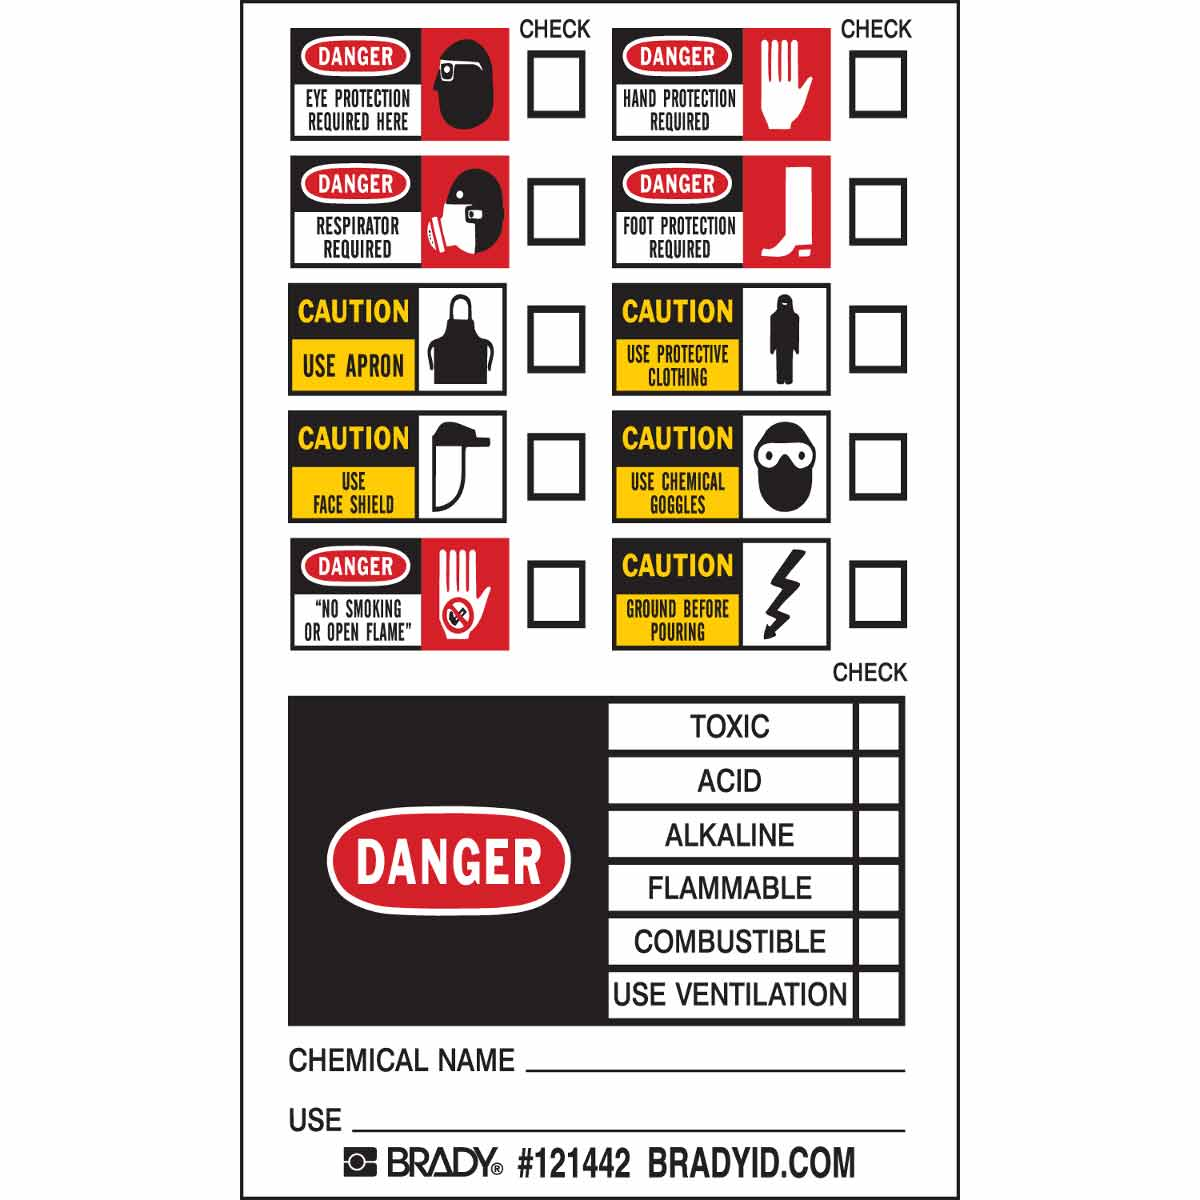 Brady® 121165 Non-Reflective Rectangular Self-Adhesive Write-On Safety Label, 3 in W, Black/Blue/Red/Yellow on White, B-7569 Adhesive Vinyl Film, 500 per Roll Labels